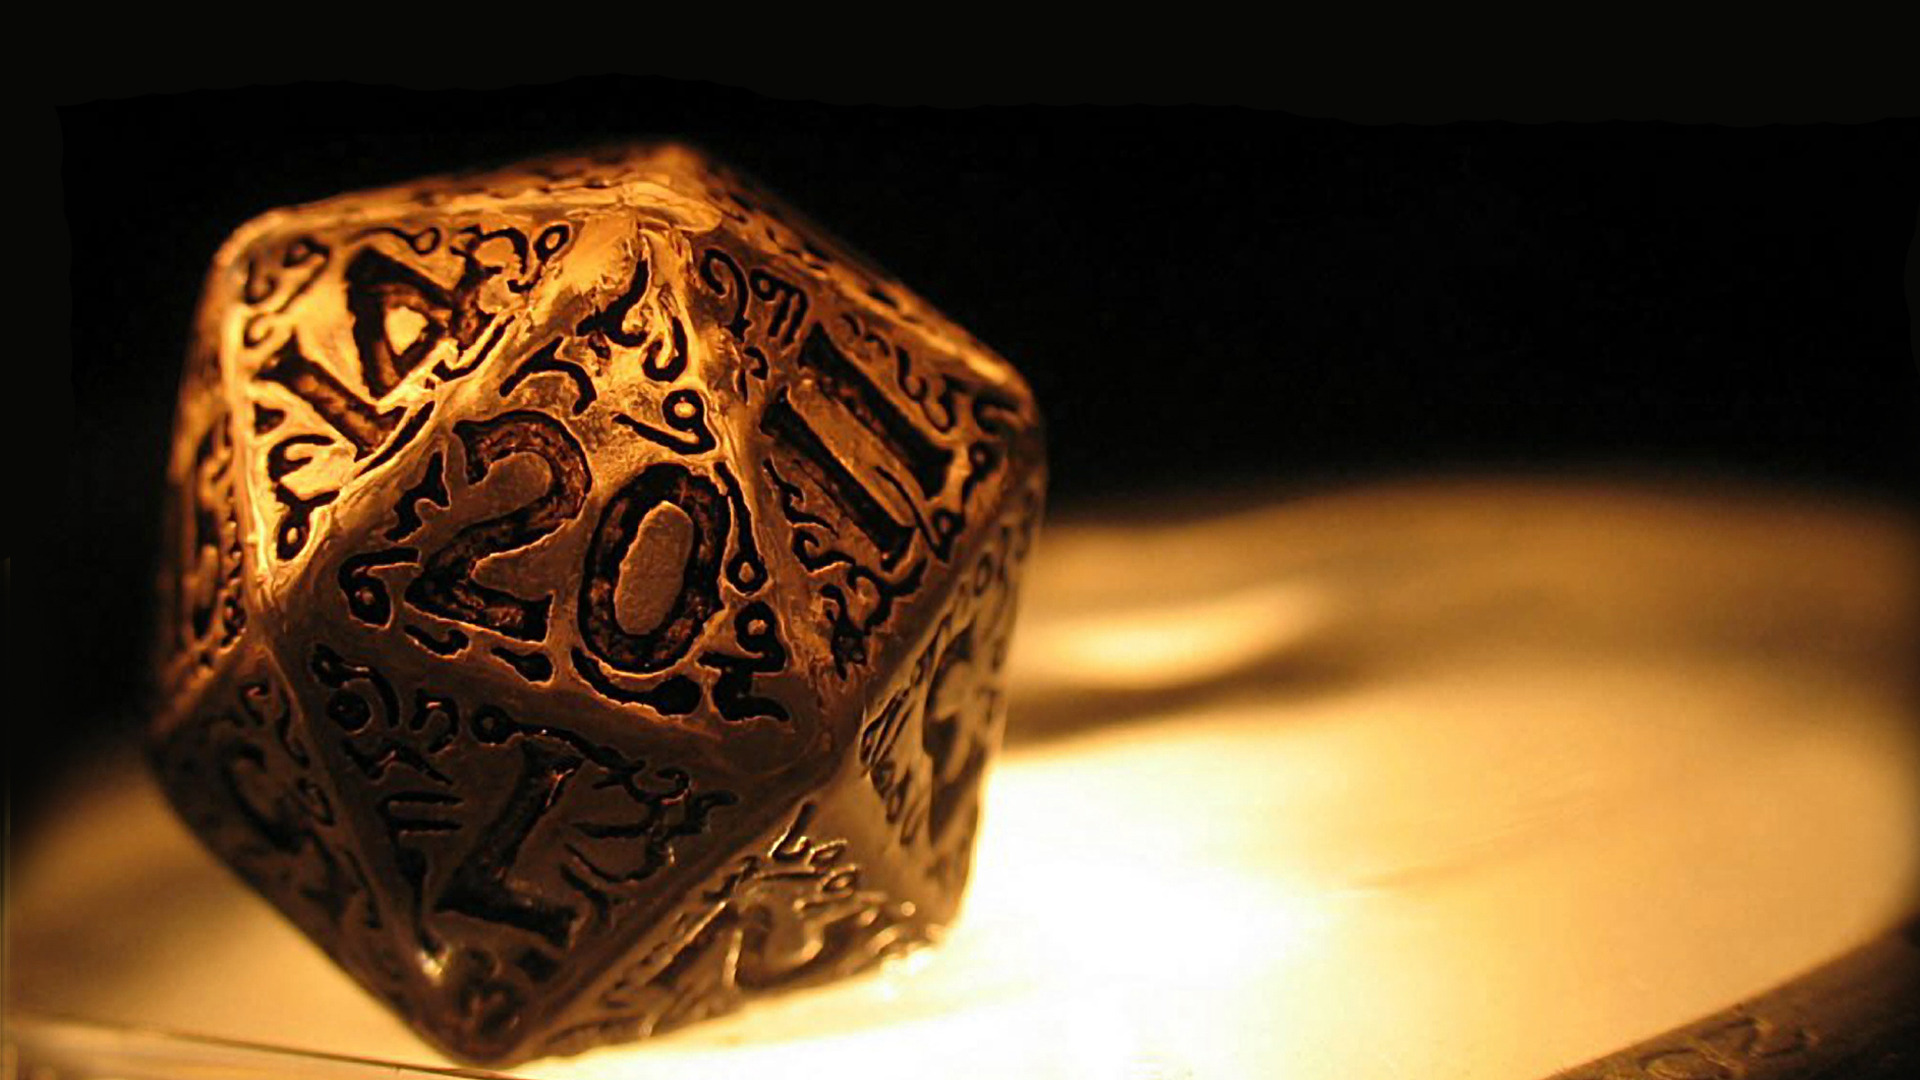 Dungeons Dragons Dice Roller wallpaper 6275 1920x1080